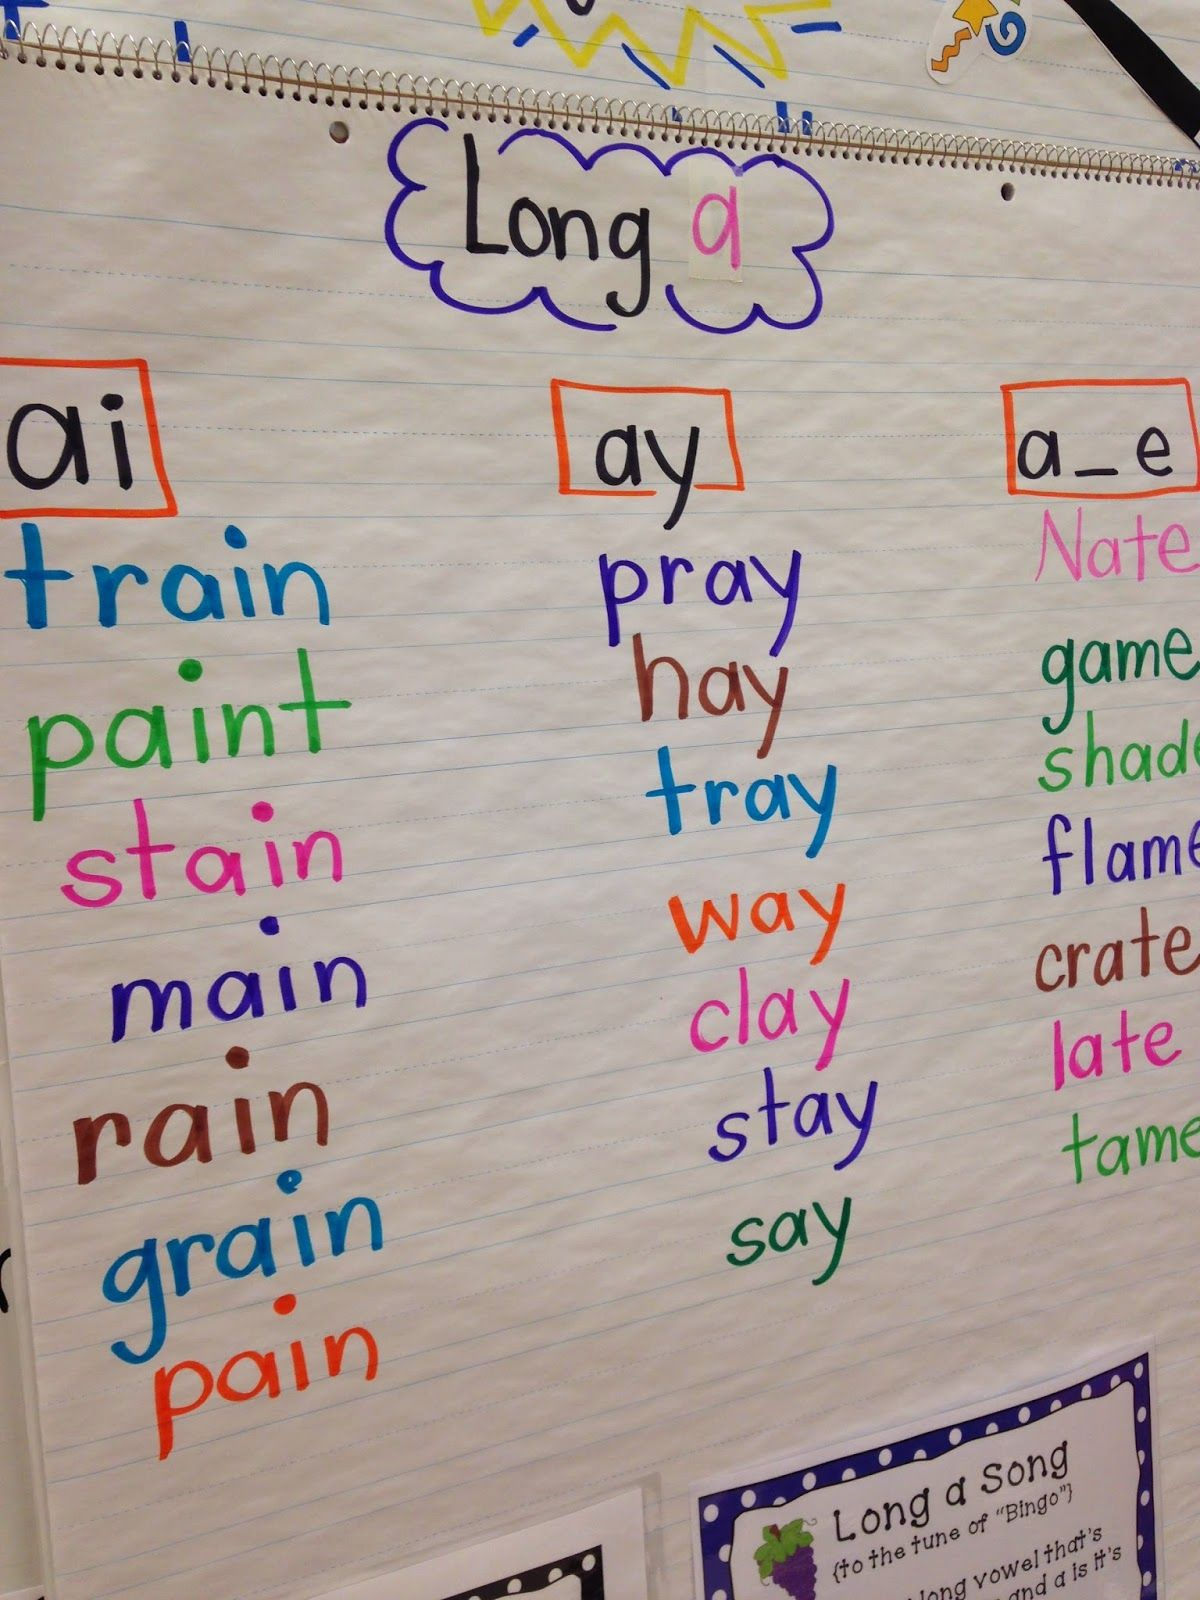 Vowel Teams Remember To Make A Charts For All Combinations Of Letter Sounds Ai Ay E Ea Ee Ei Ey I Ie O Oa Oe Ow U Ue